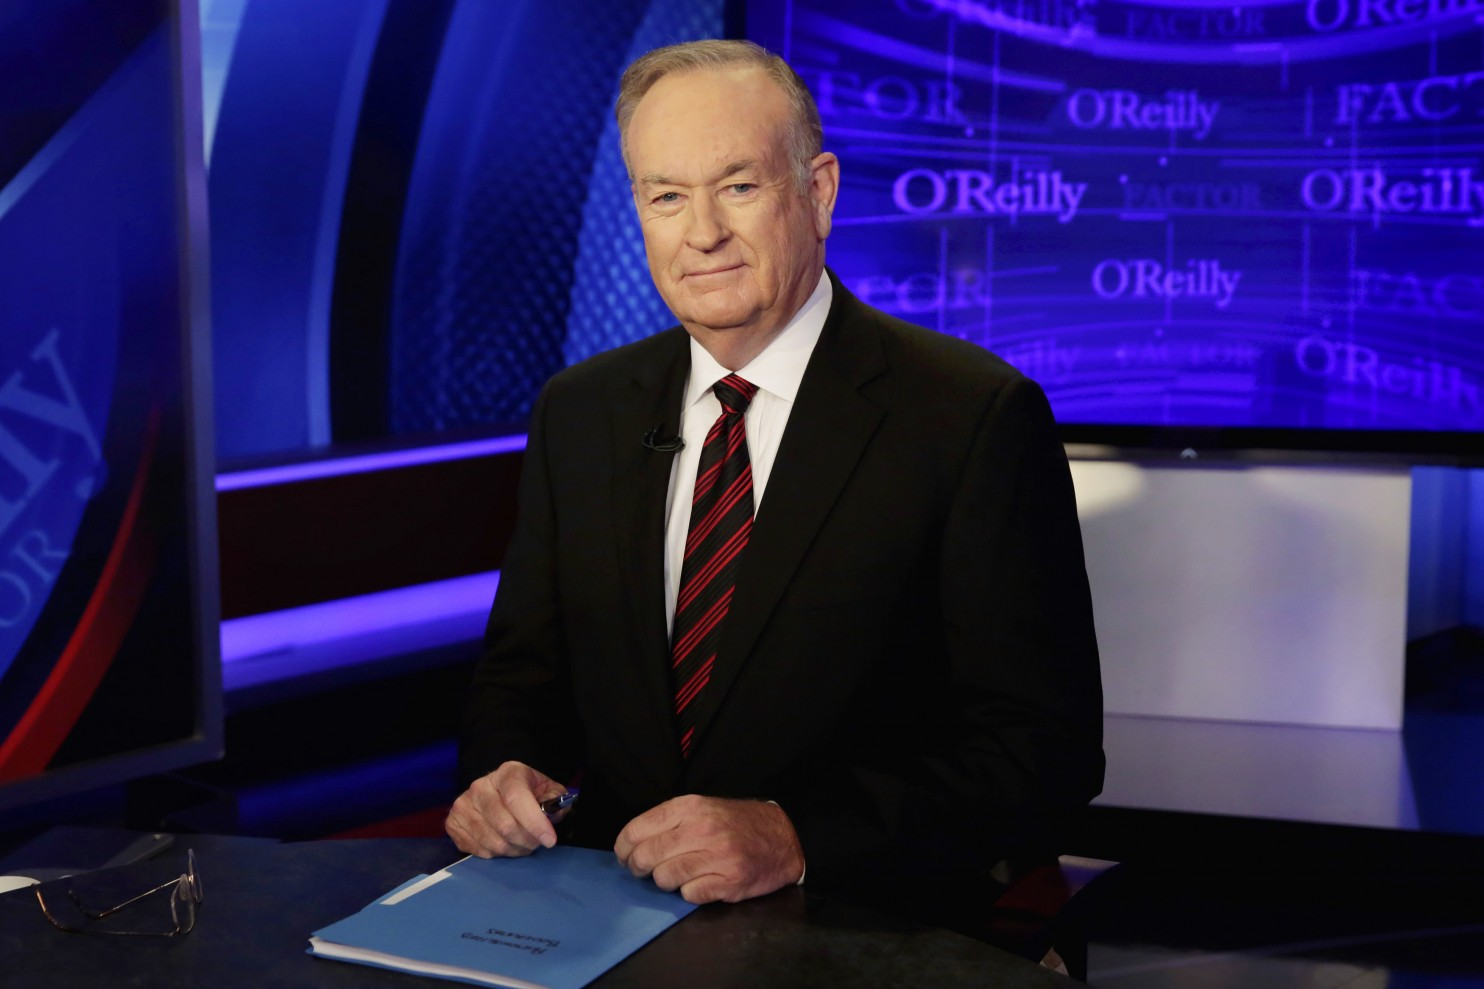 Advertisers are Fleeing Bill O'Reilly, but Viewers Aren't